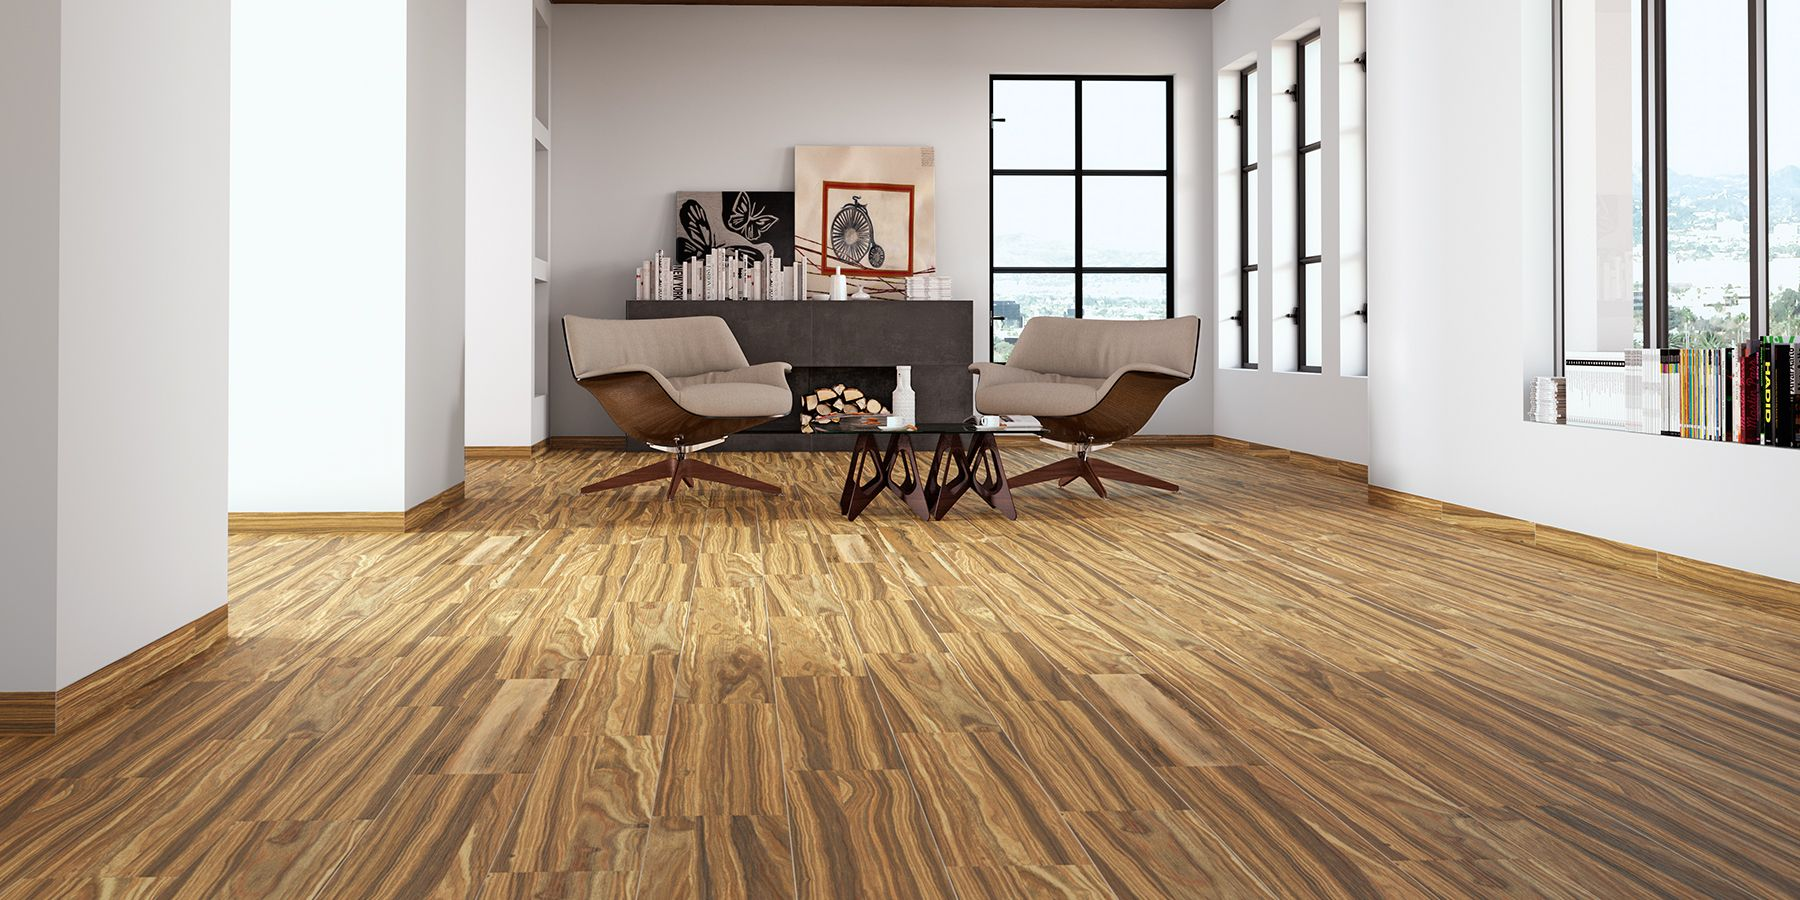 Amazonas teja wood look porcelain tiles for floor or wall amazonas teja wood look porcelain tiles for floor or wall galactic tiles http dailygadgetfo Image collections